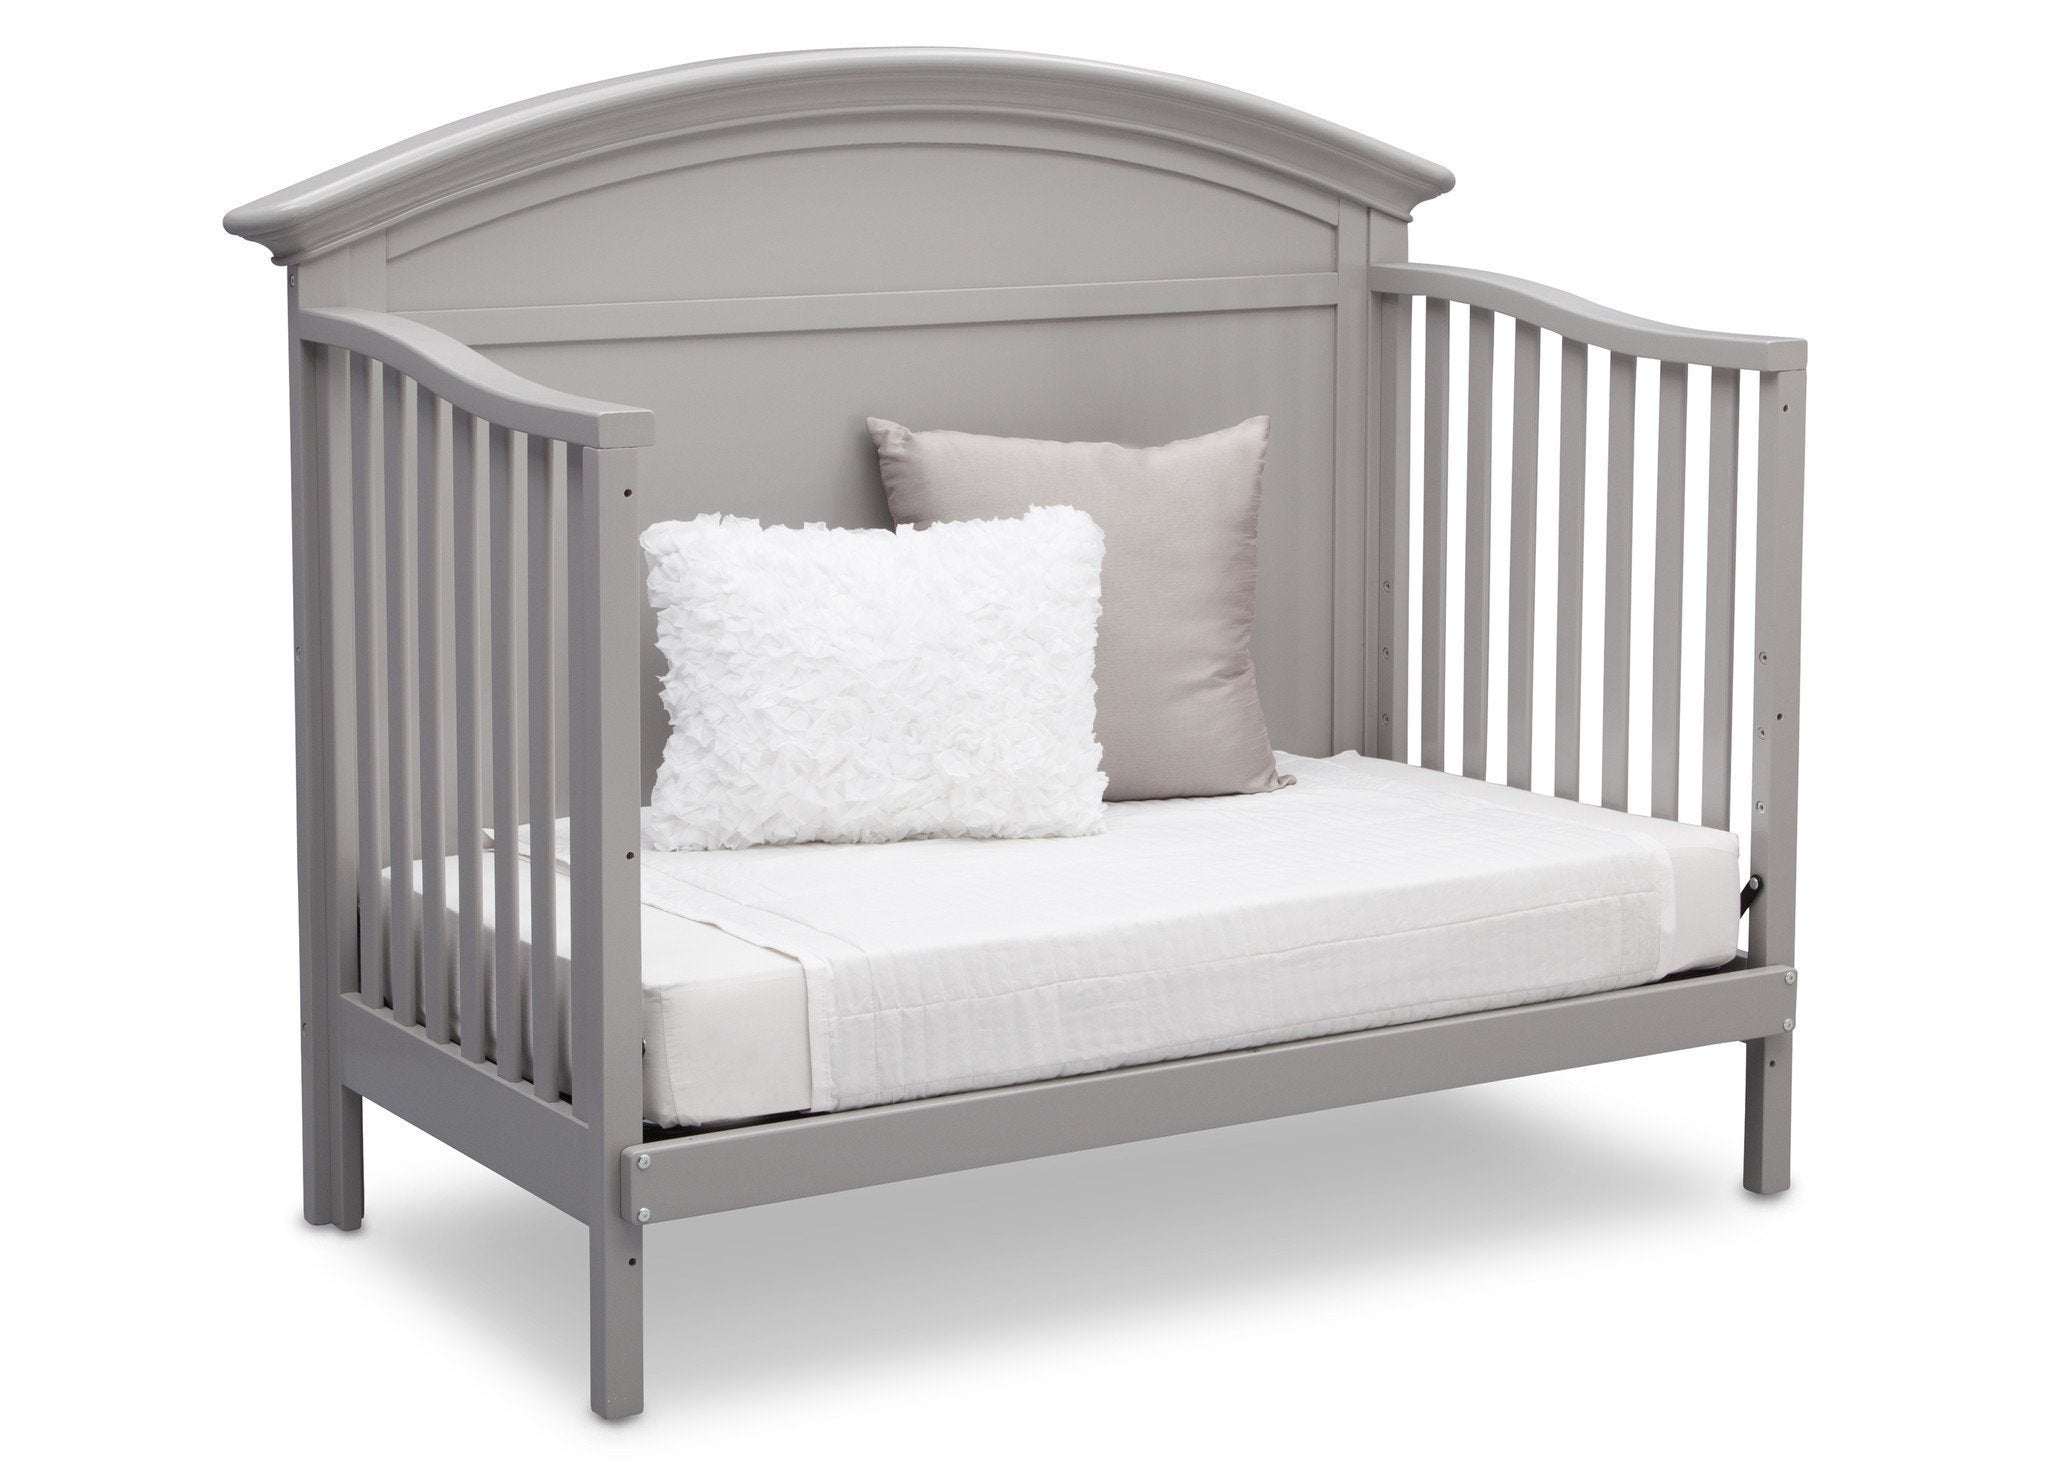 Serta Grey (026) Adelaide 4-in-1 Crib, Side View with Day Bed Conversion a6a